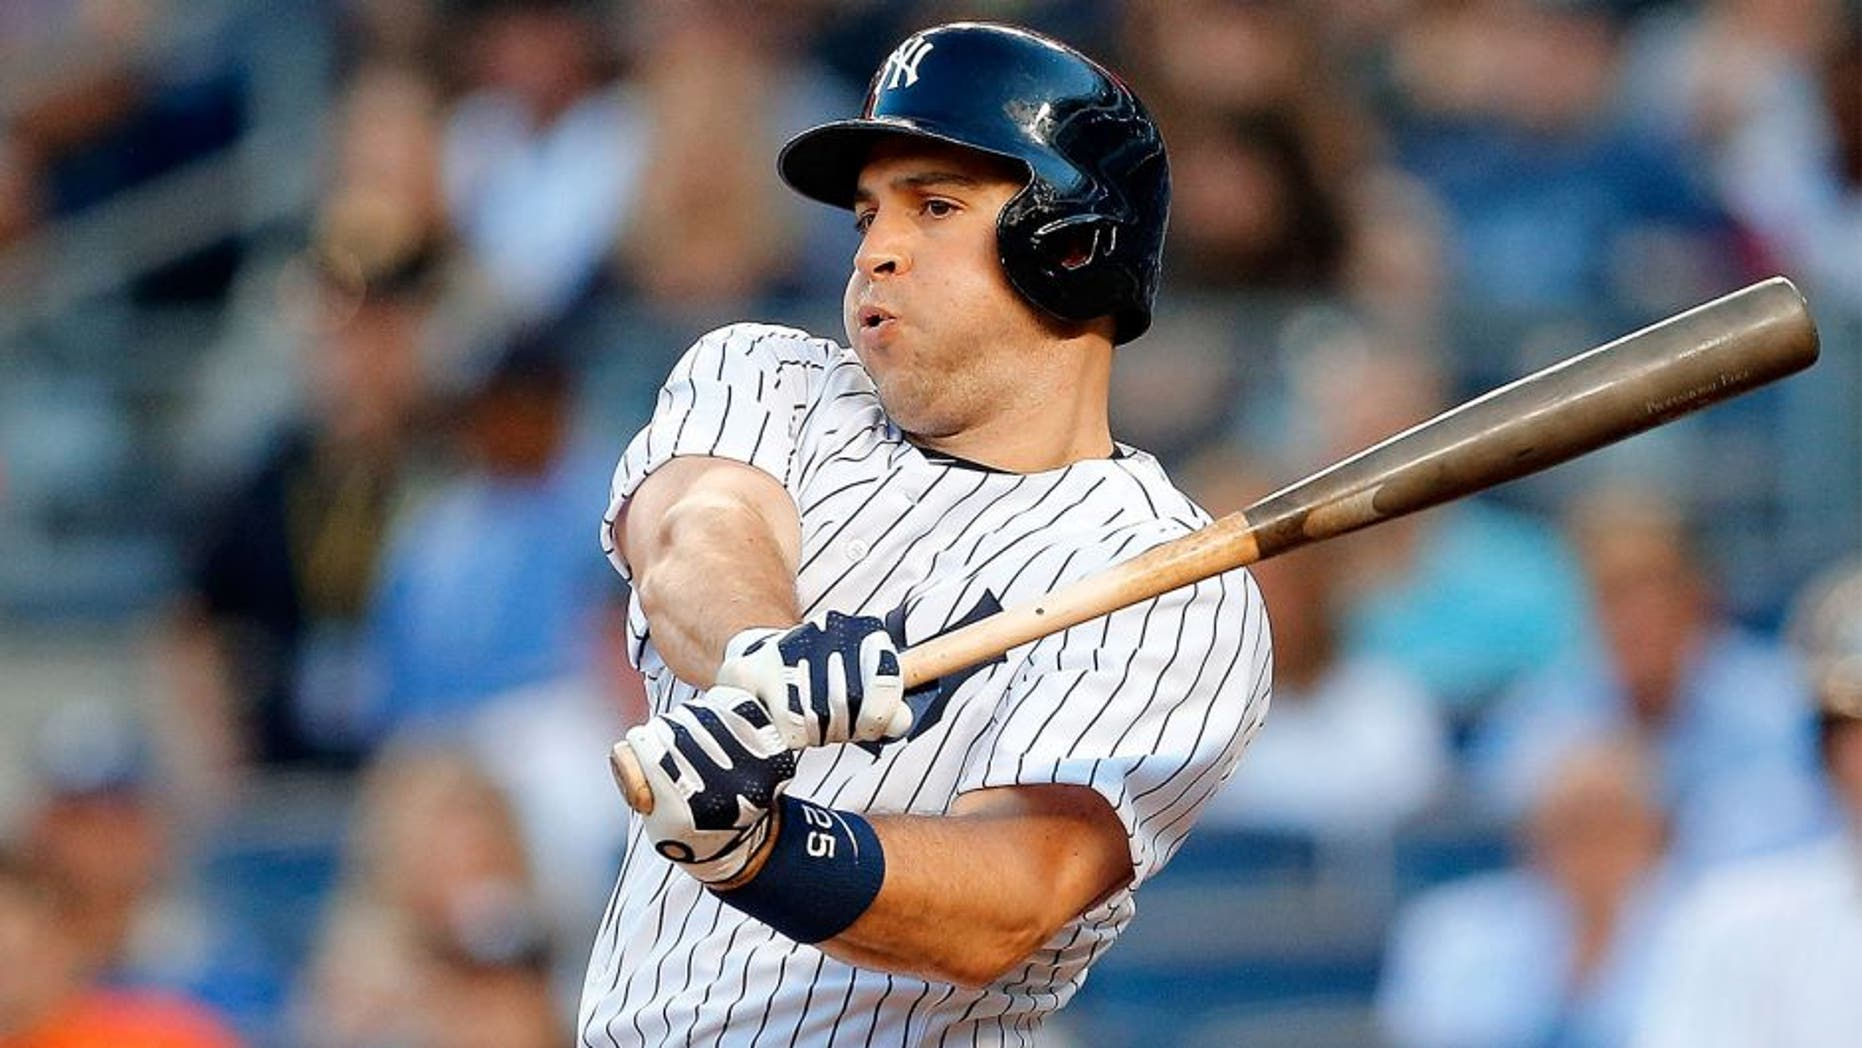 NEW YORK, NY - AUGUST 04: Mark Teixeira #25 of the New York Yankees in action against the Boston Red Sox at Yankee Stadium on August 4, 2015 in the Bronx borough of New York City. The Yankees defeated the Red Sox 13-3. (Photo by Jim McIsaac/Getty Images)